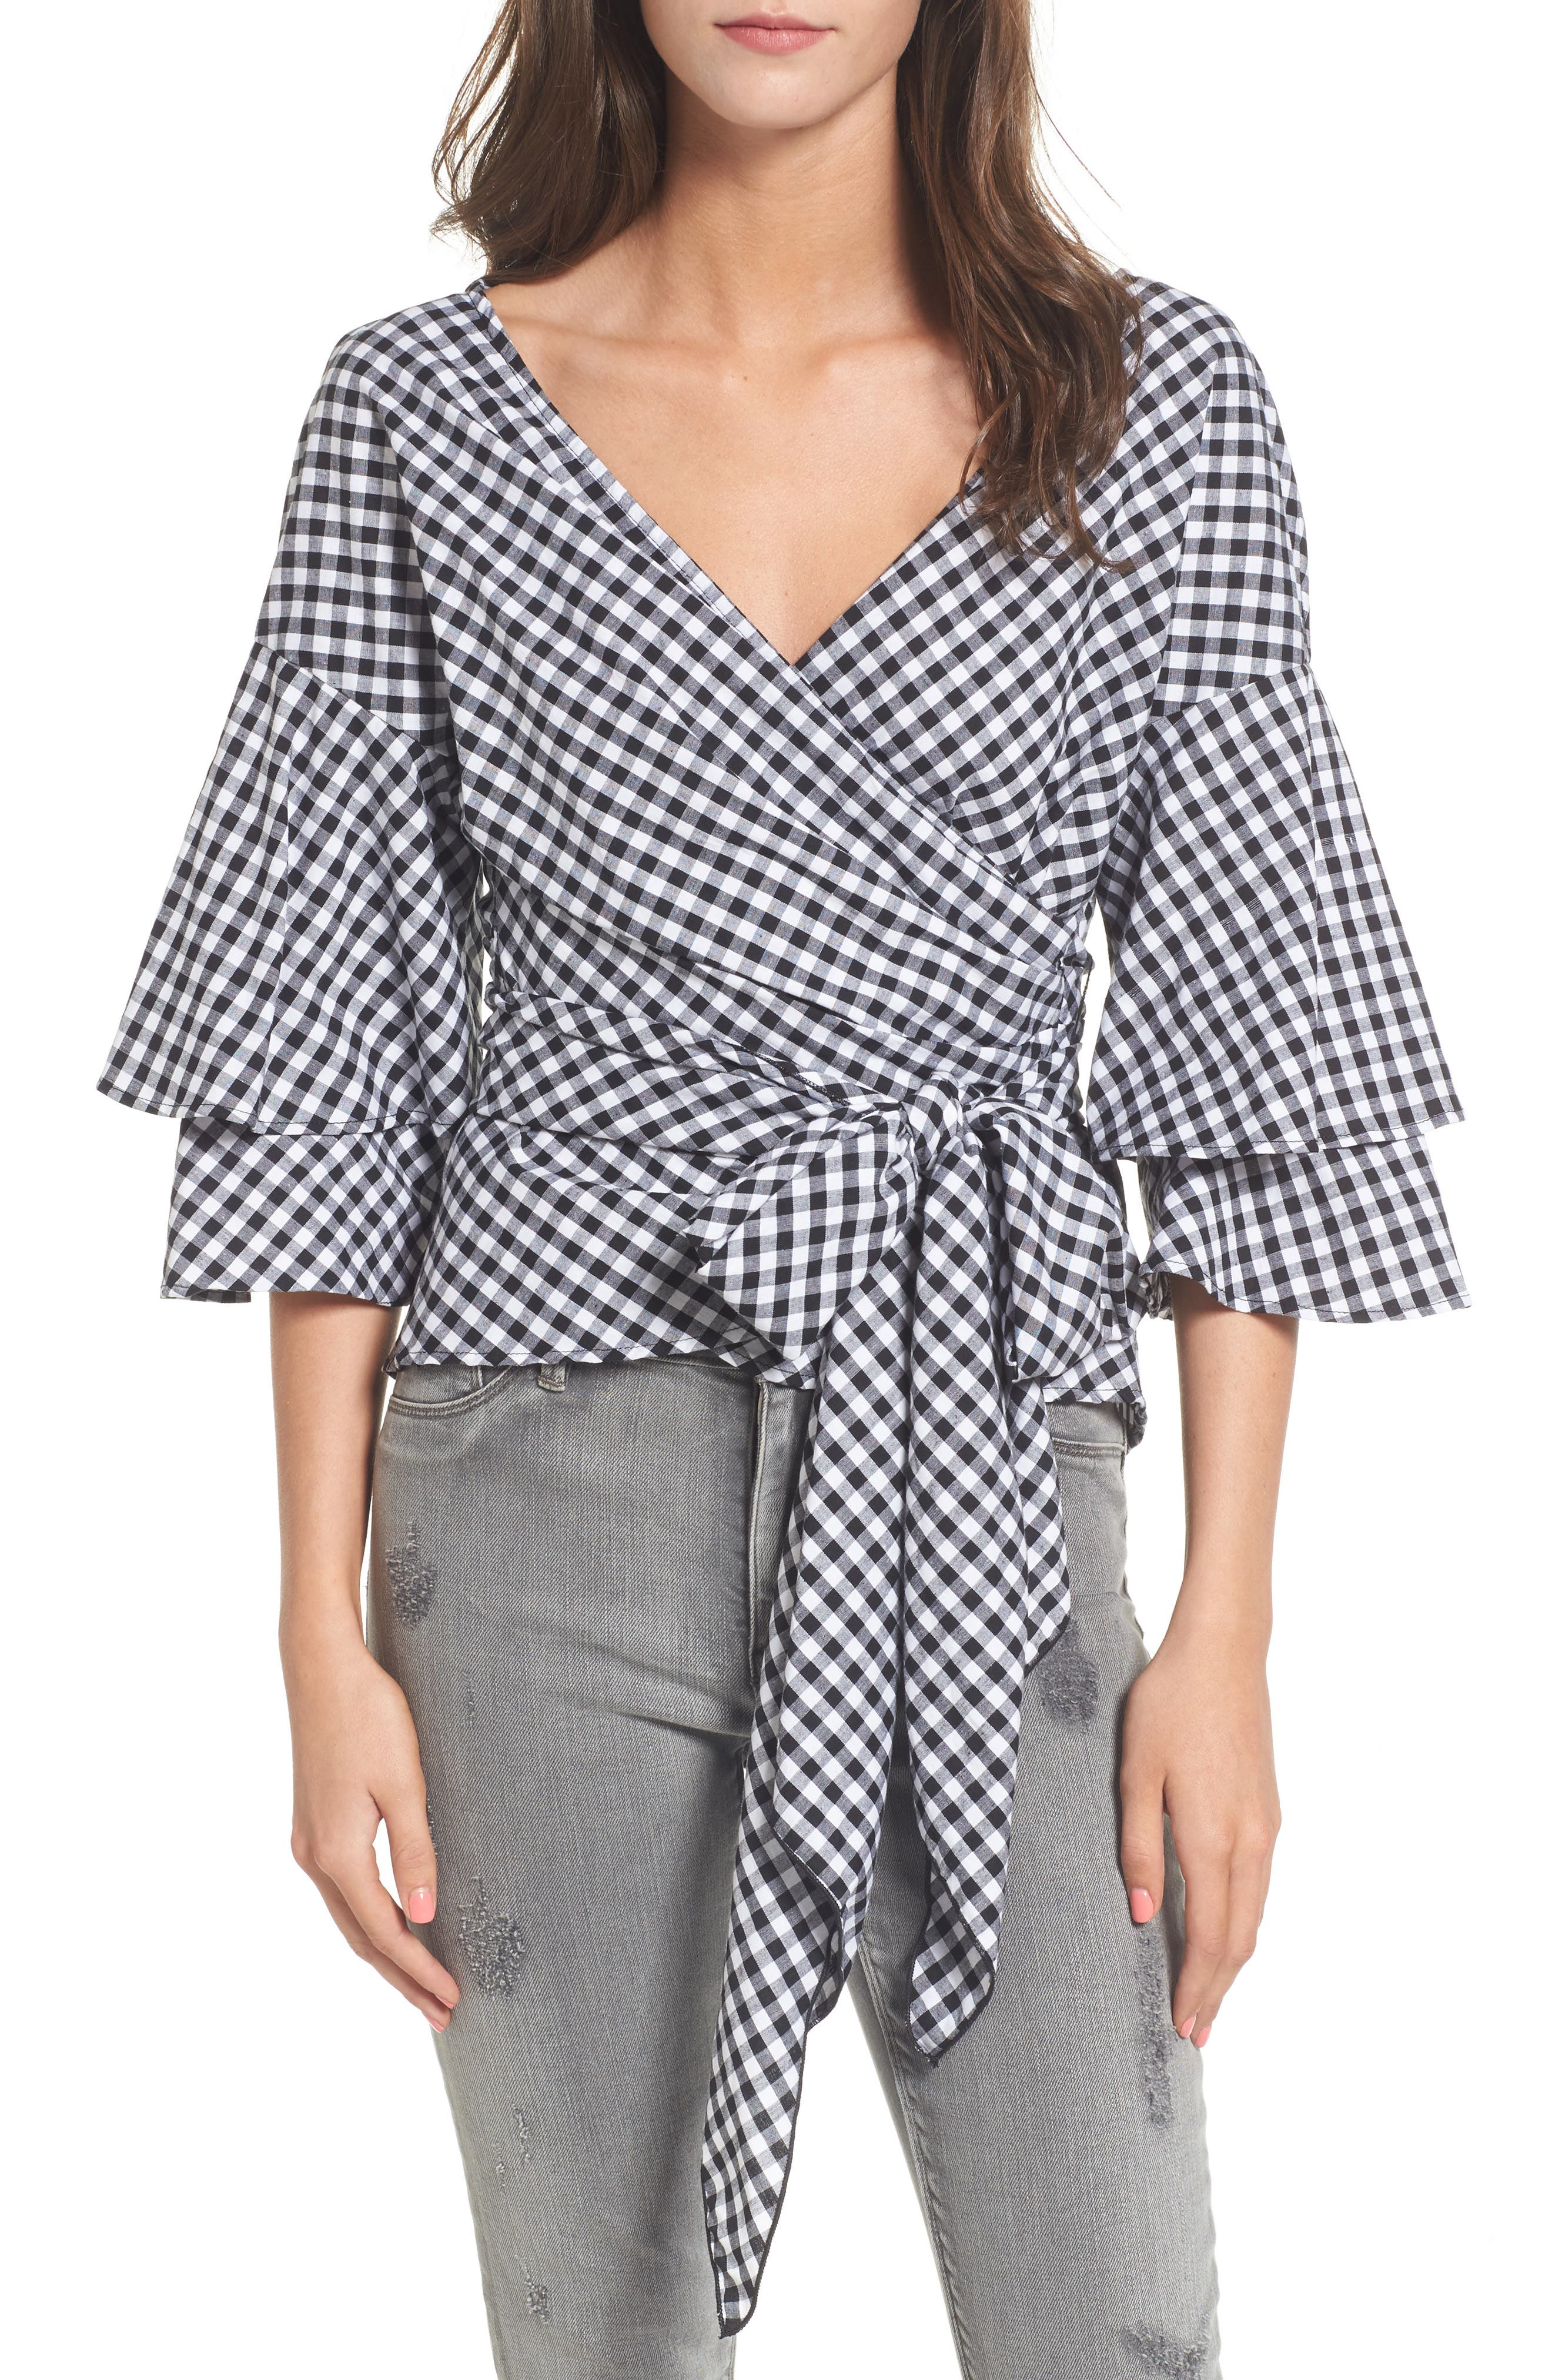 Beckett Tiered Bell Sleeve Top,                         Main,                         color, Black Gingham